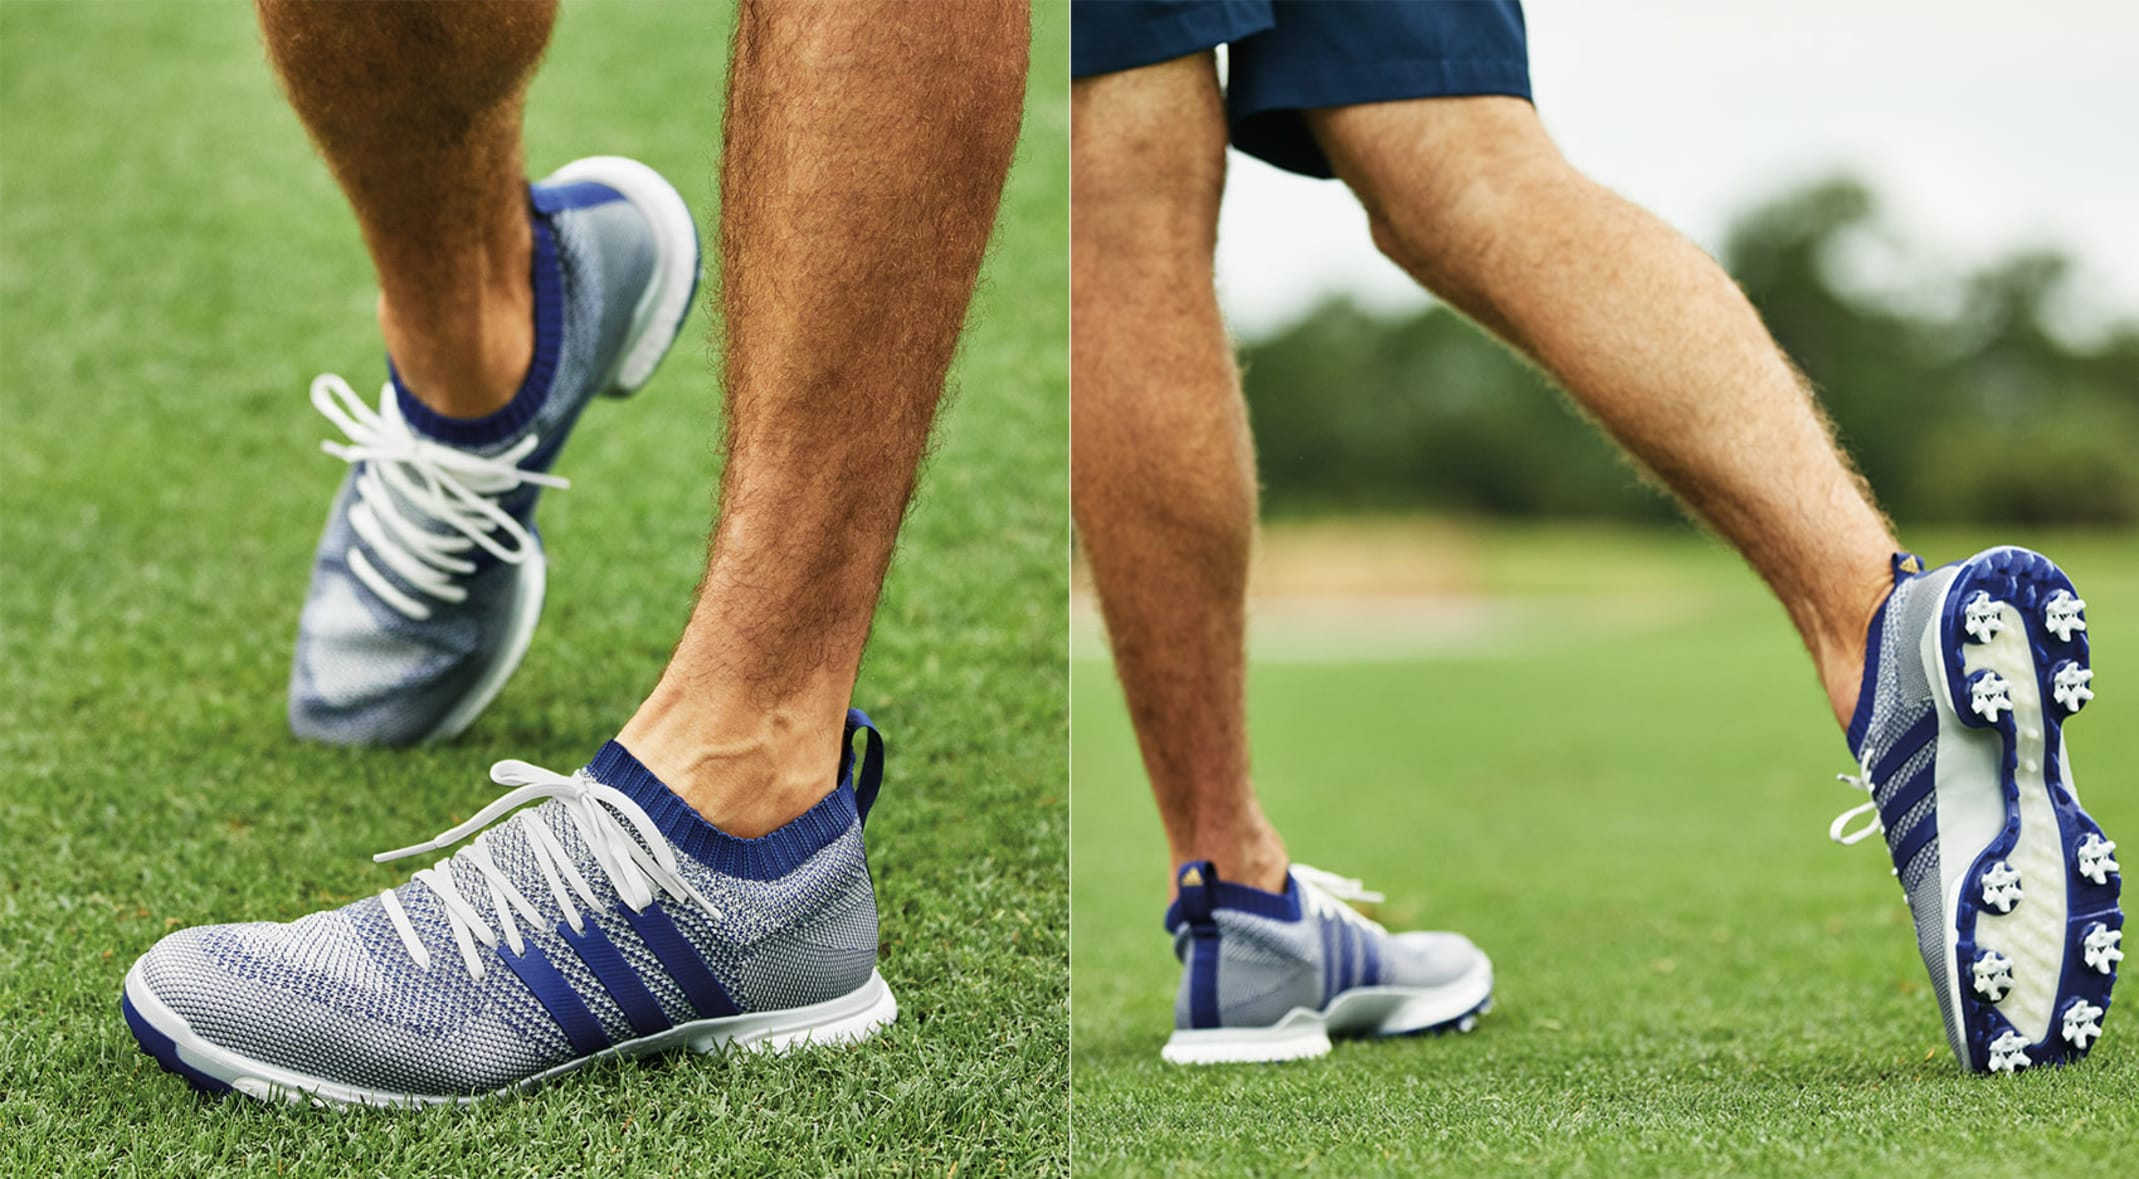 a86c011fe32c adidas Golf s new TOUR360 Knit offers increased flexibility while  maintaining support throughout shoe. (Photos